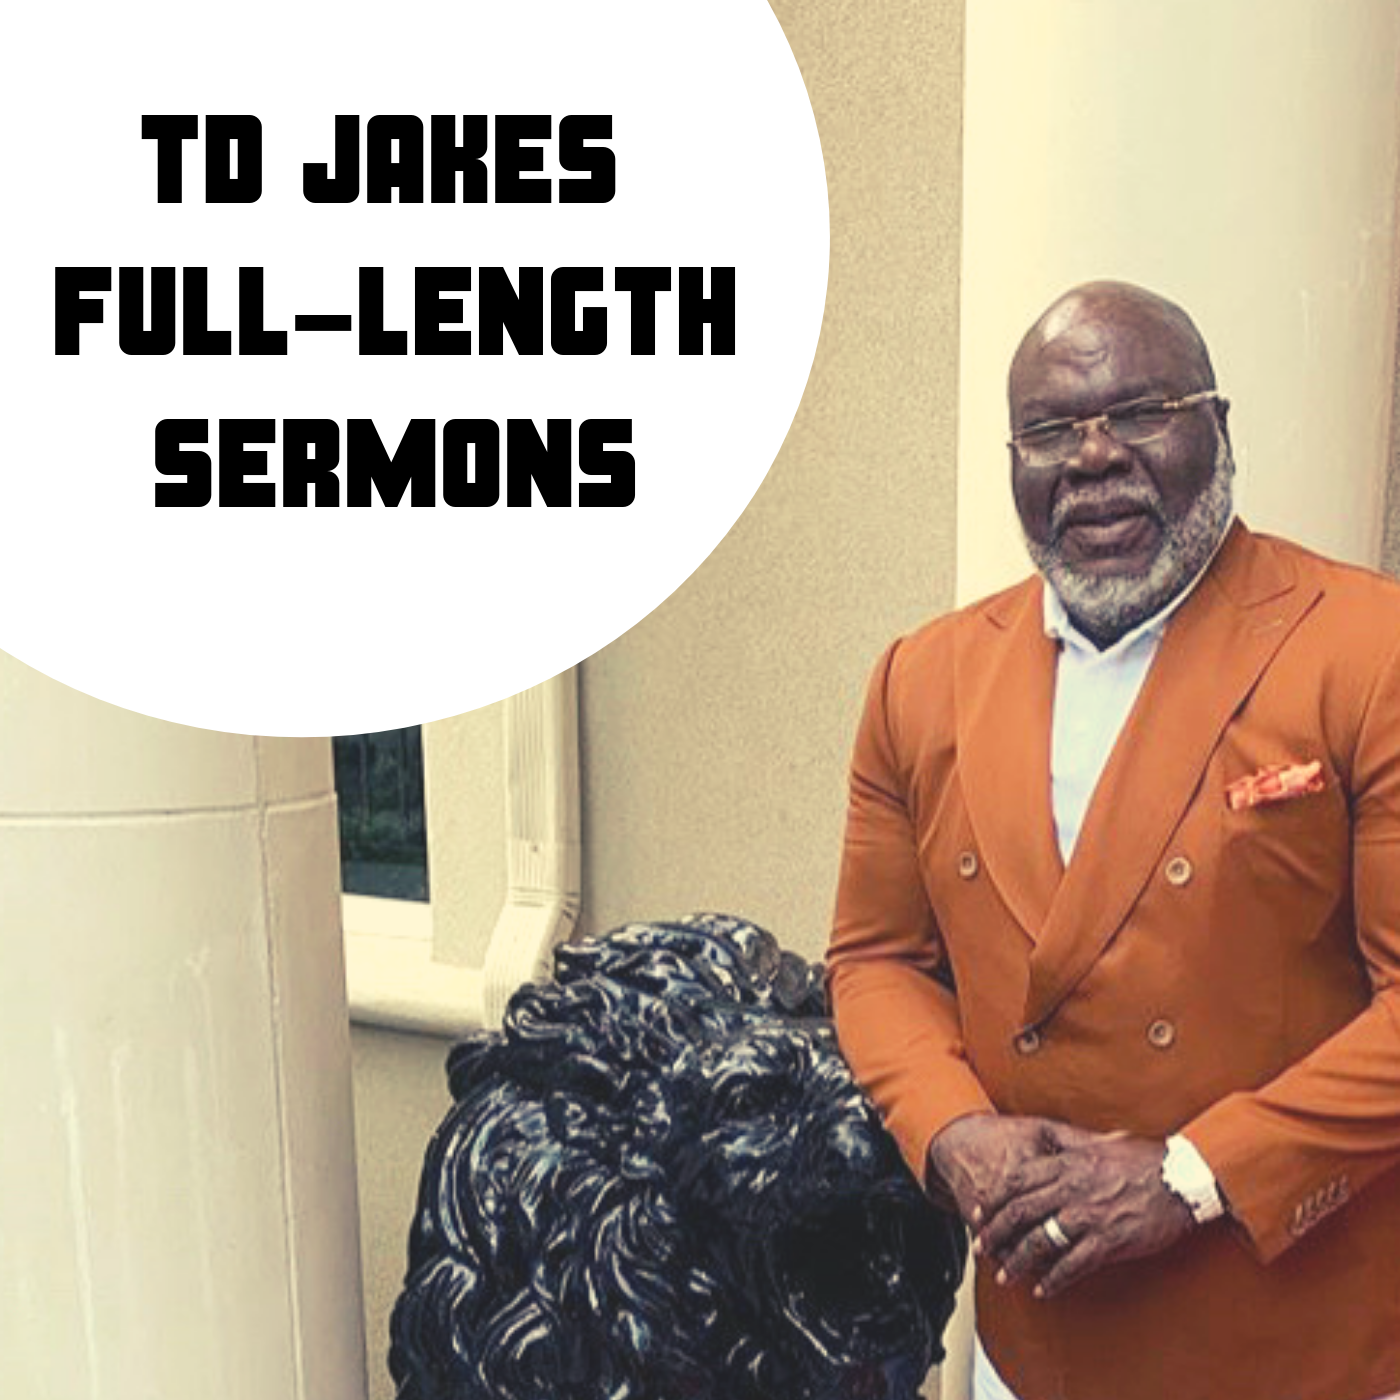 Bishop TD Jakes Full-Legnth Sermons and Interviews